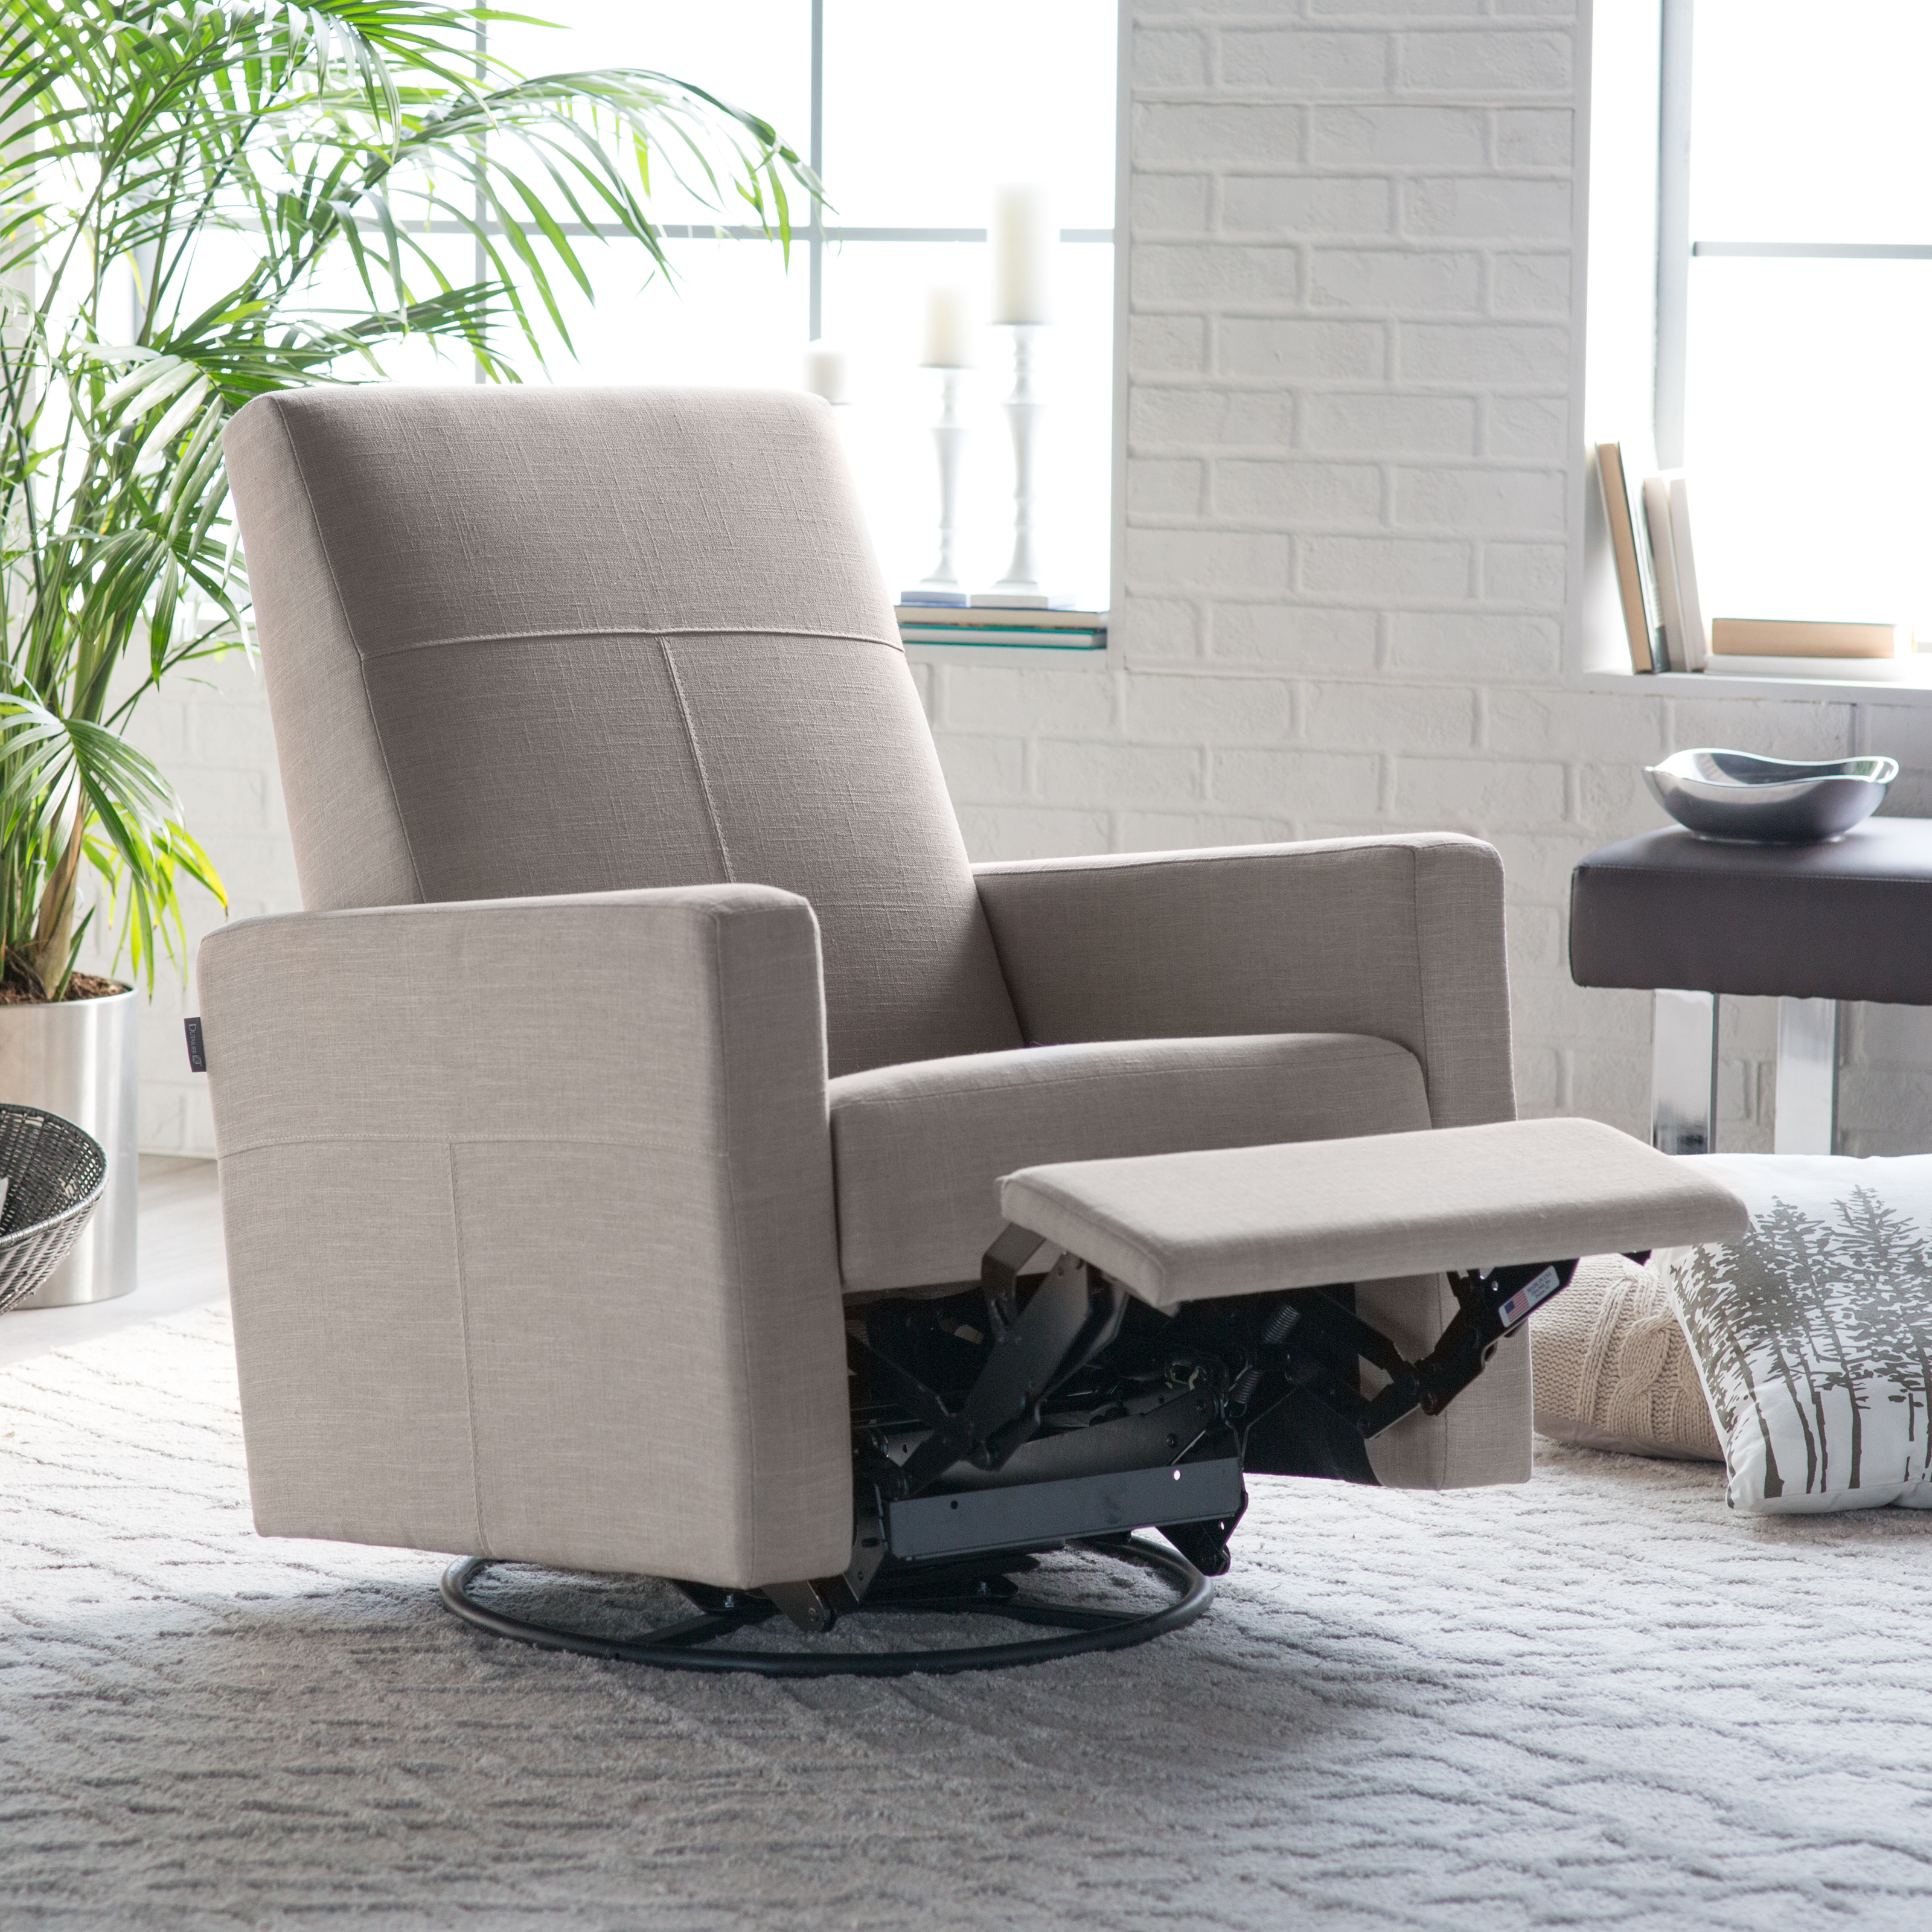 & Dutailier Minho Reclining Glider with Built In Footrest | Hayneedle islam-shia.org